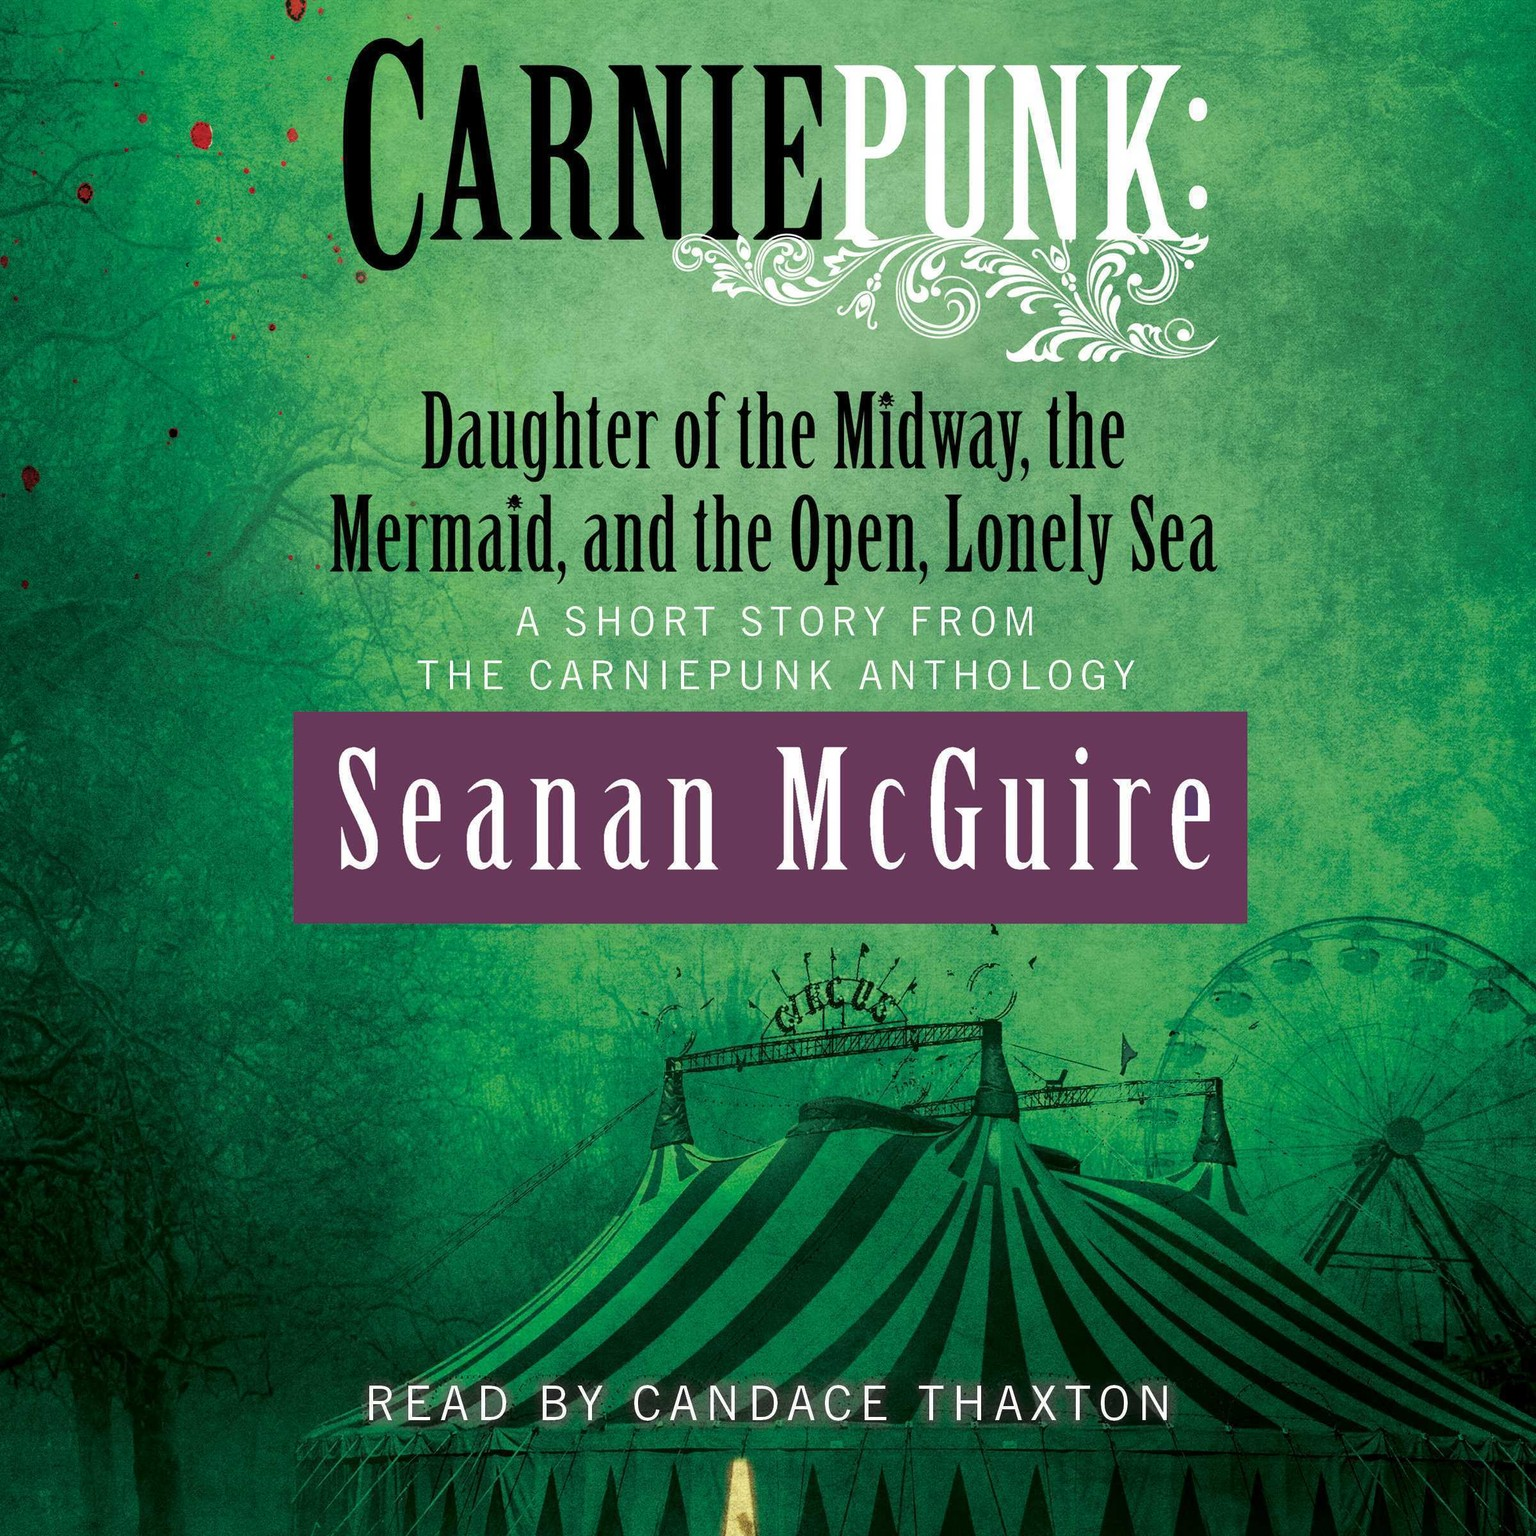 Printable Carniepunk: Daughter of the Midway, the Mermaid, and the Open, Lonely Sea Audiobook Cover Art